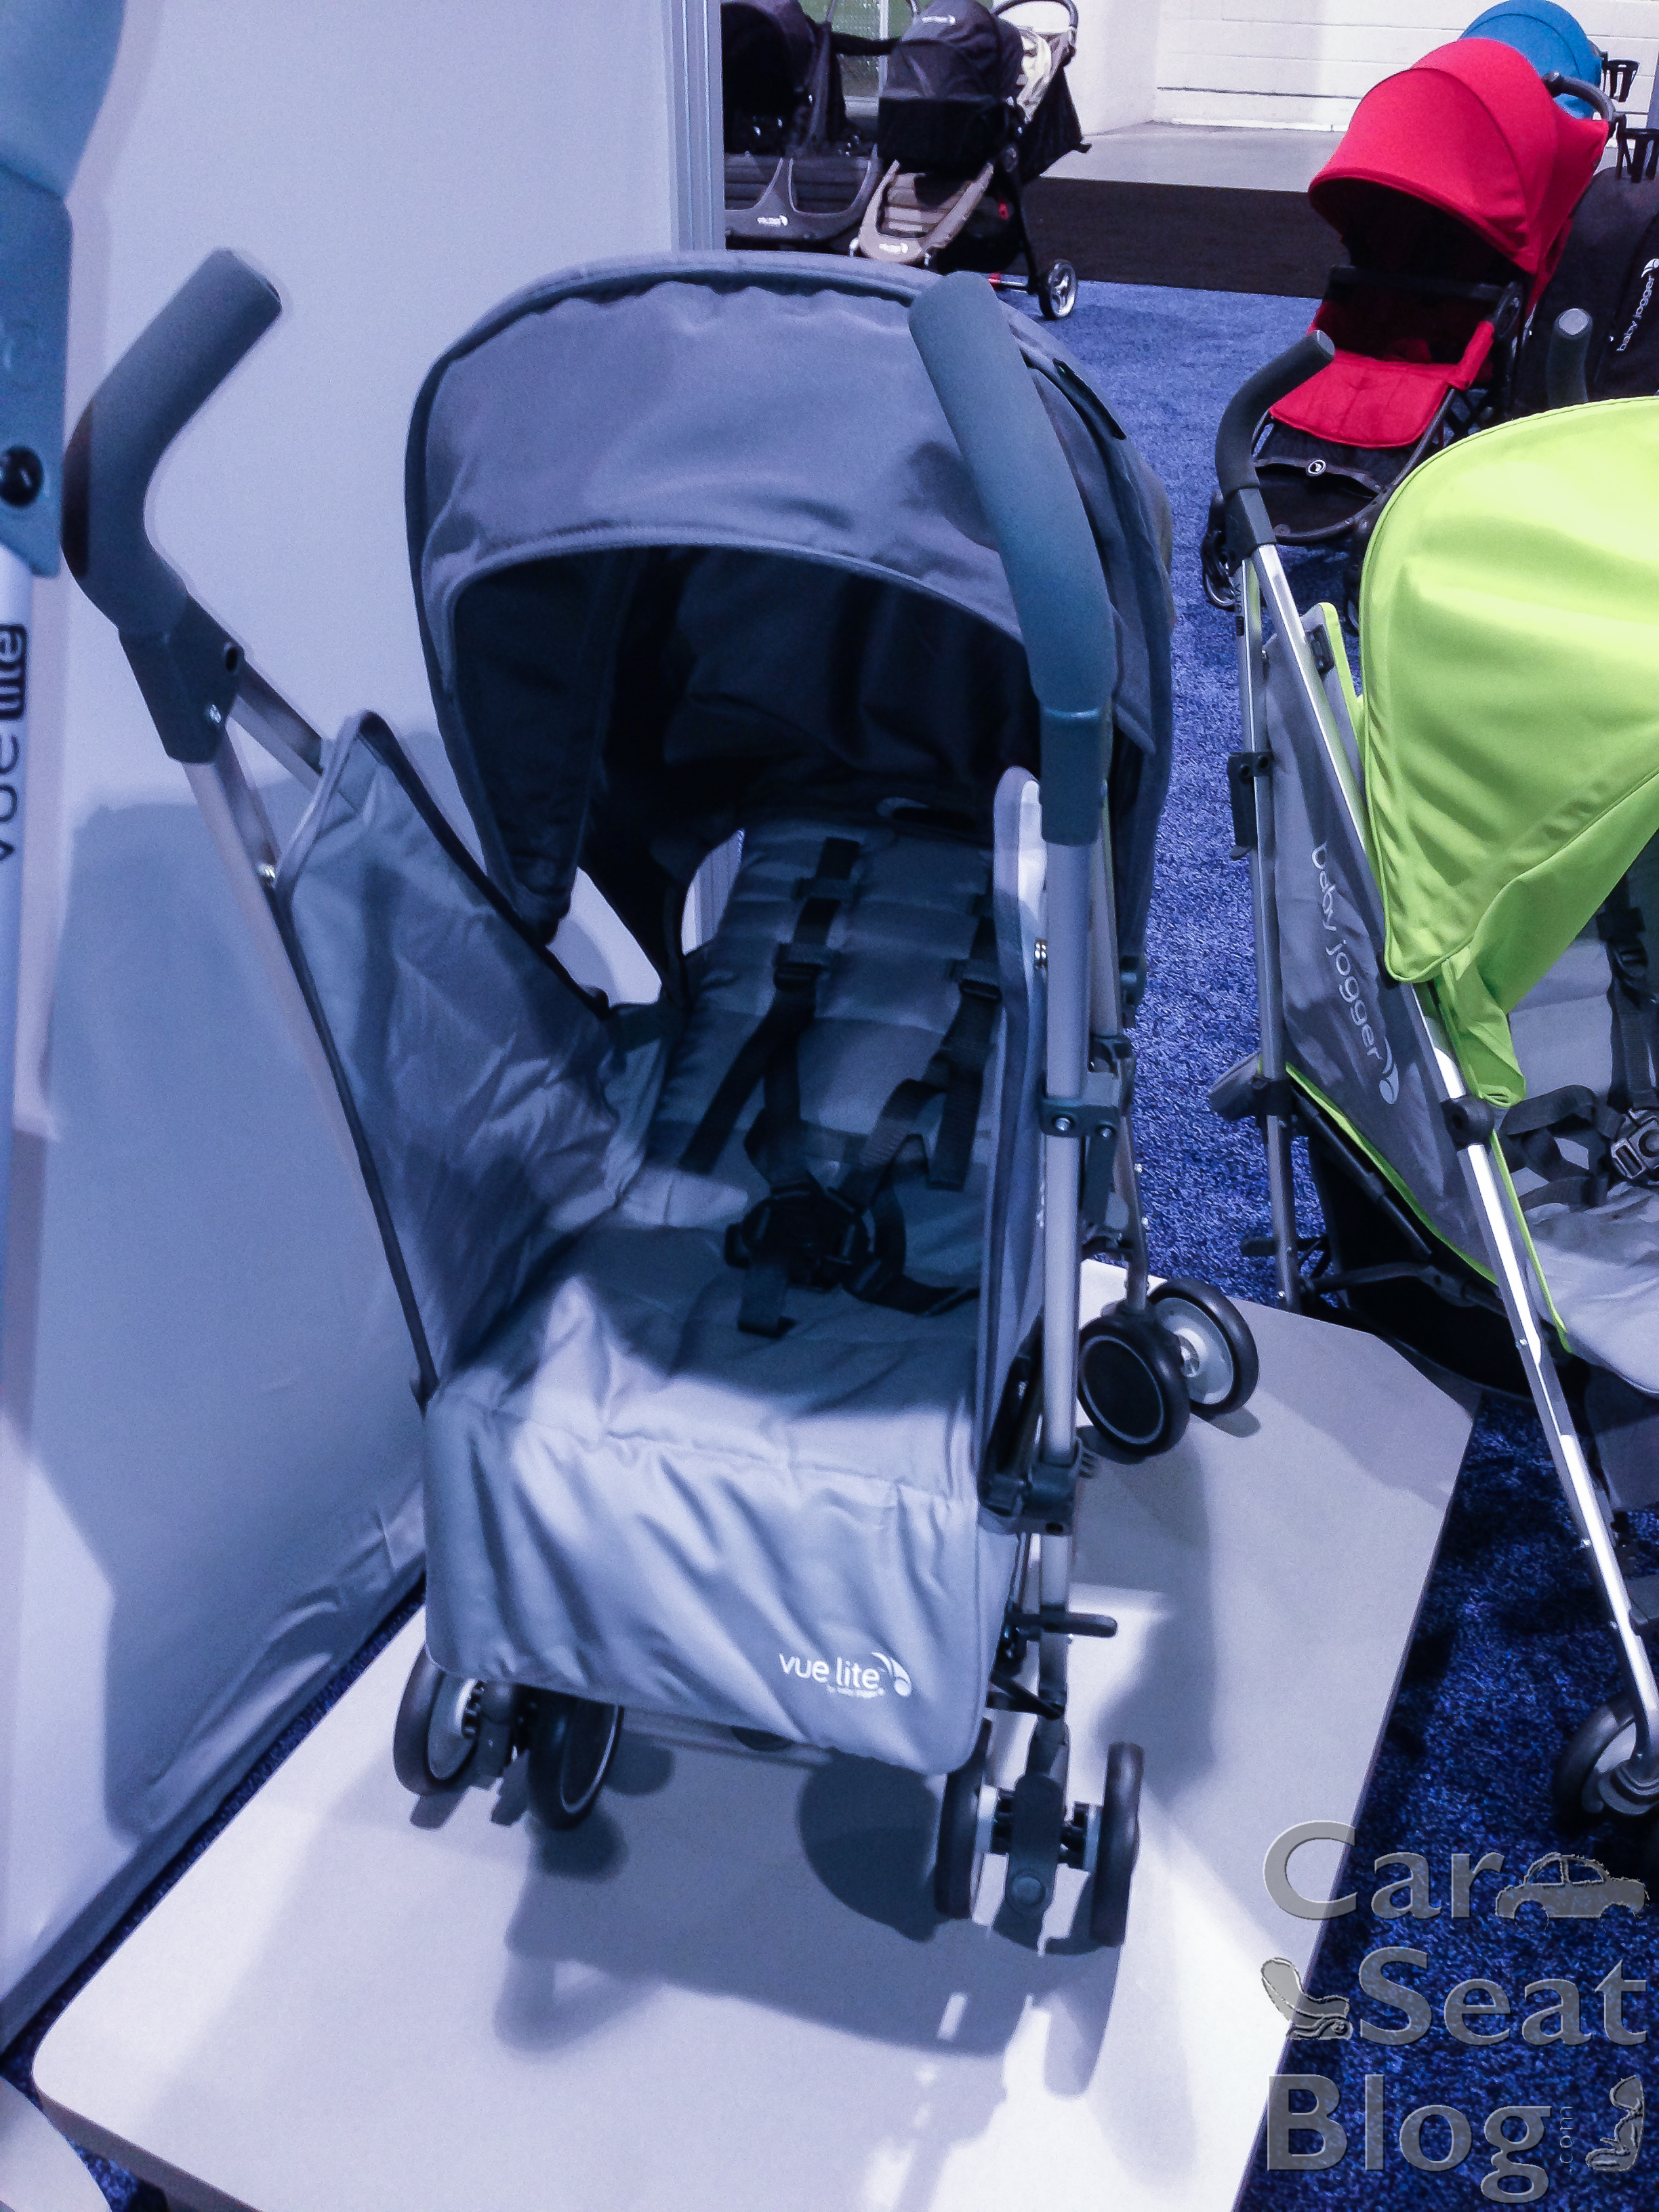 Baby Jogger Performance Single Carseatblog The Most Trusted Source For Car Seat Reviews